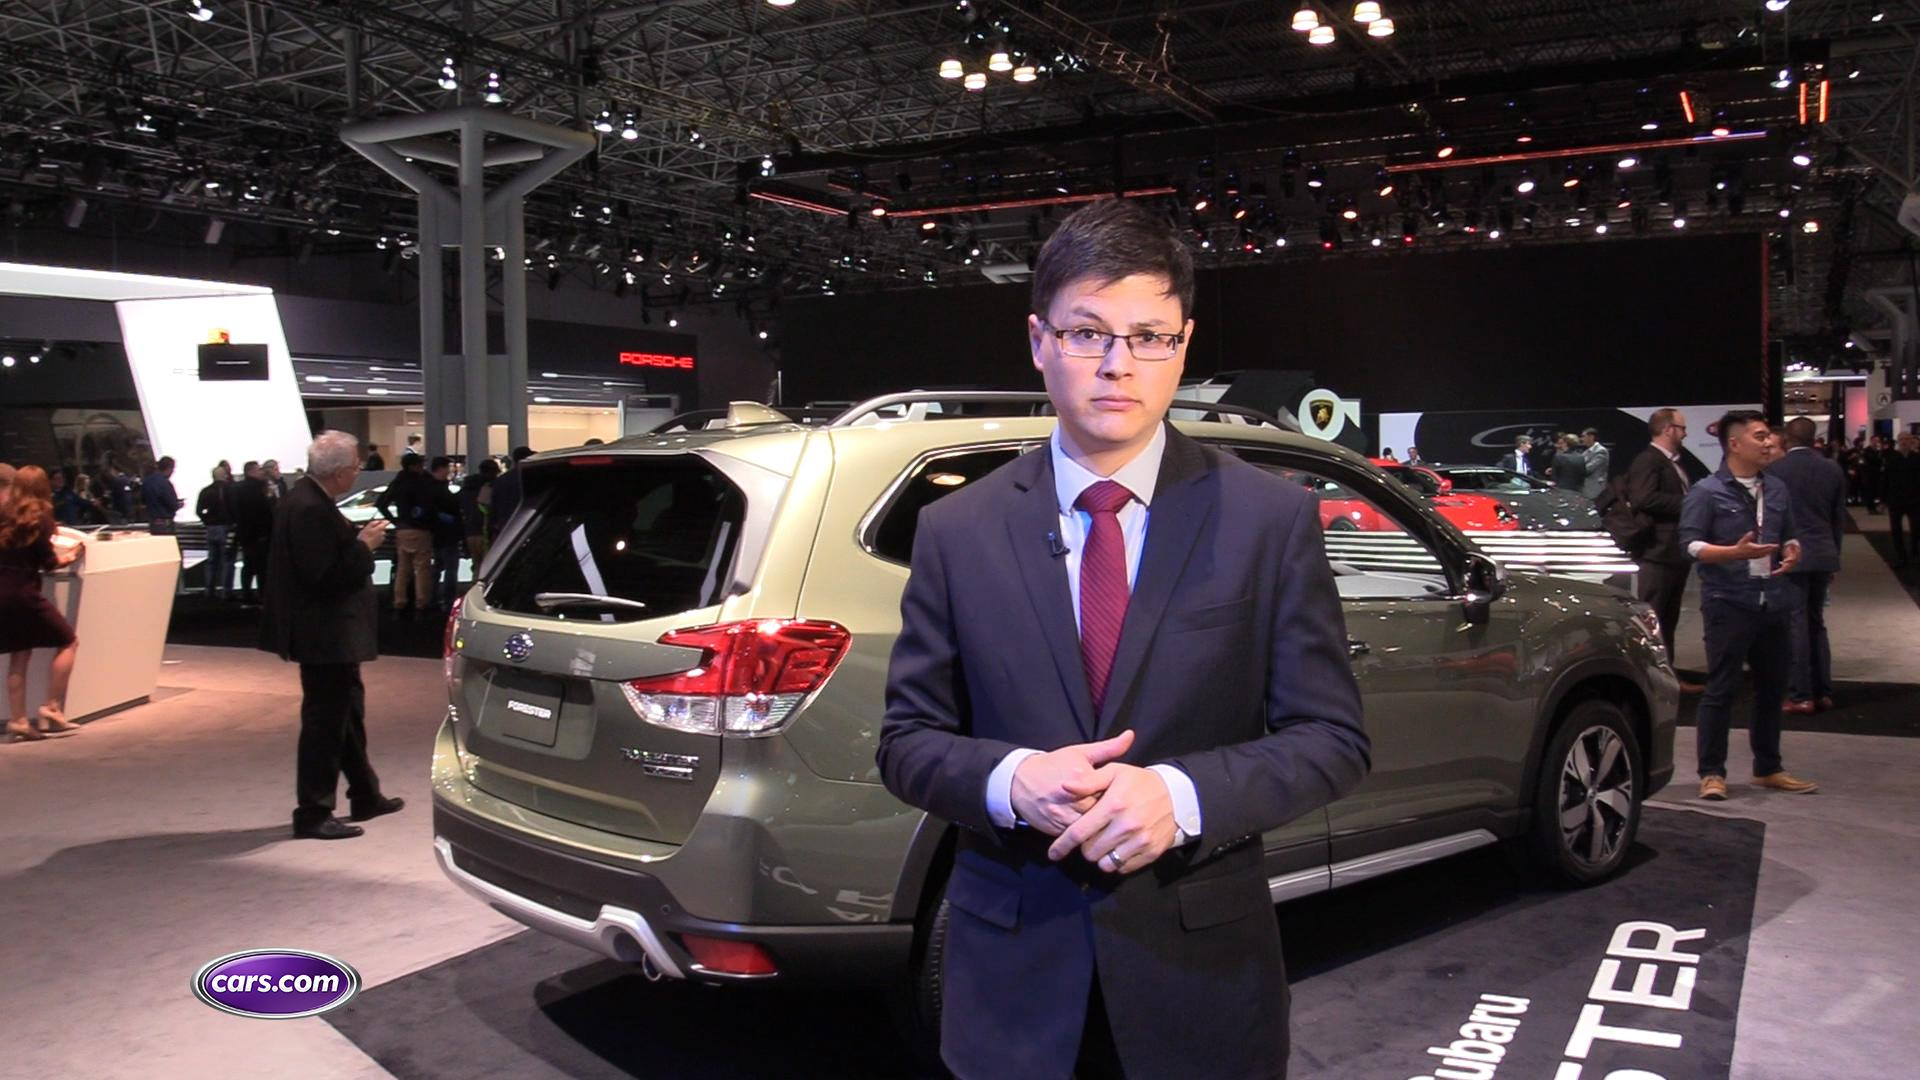 Video: 2019 Subaru Forester: First Look – Cars.com